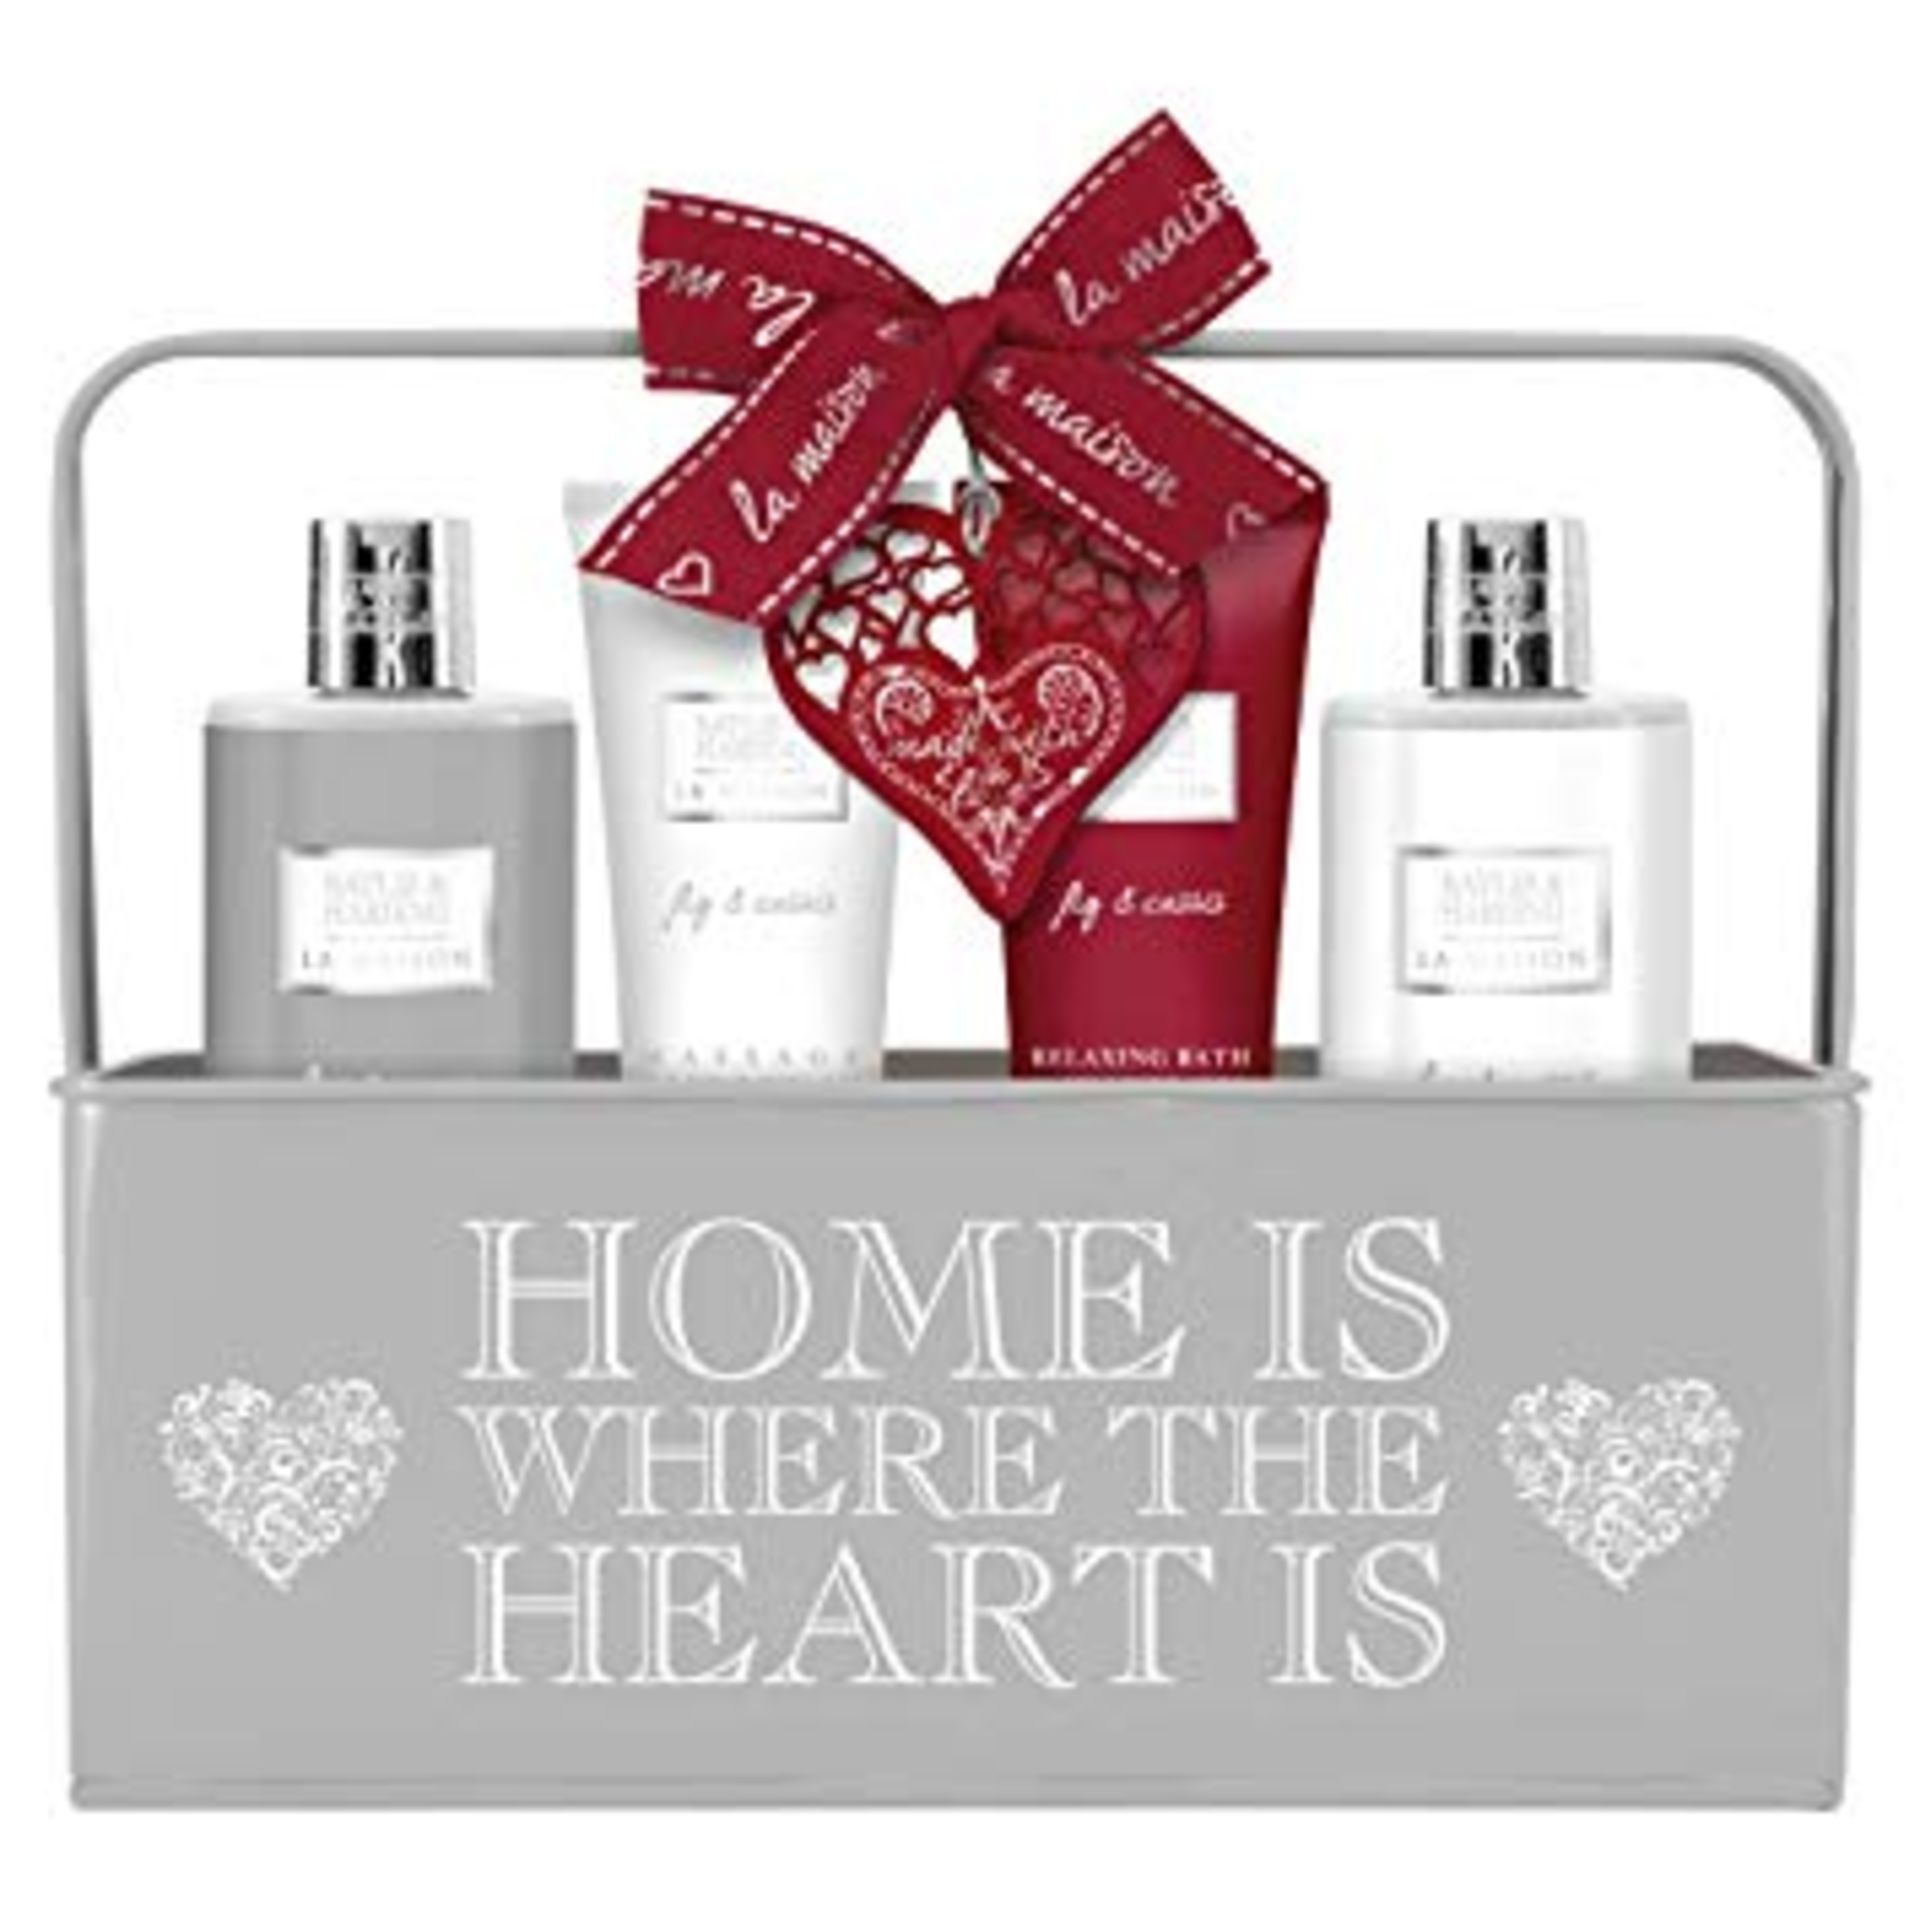 Lot 51517 - V Brand New Baylis & Harding Home Is Where The Heart Is La Maison Fig & Cassis Gift Set ISP £23.